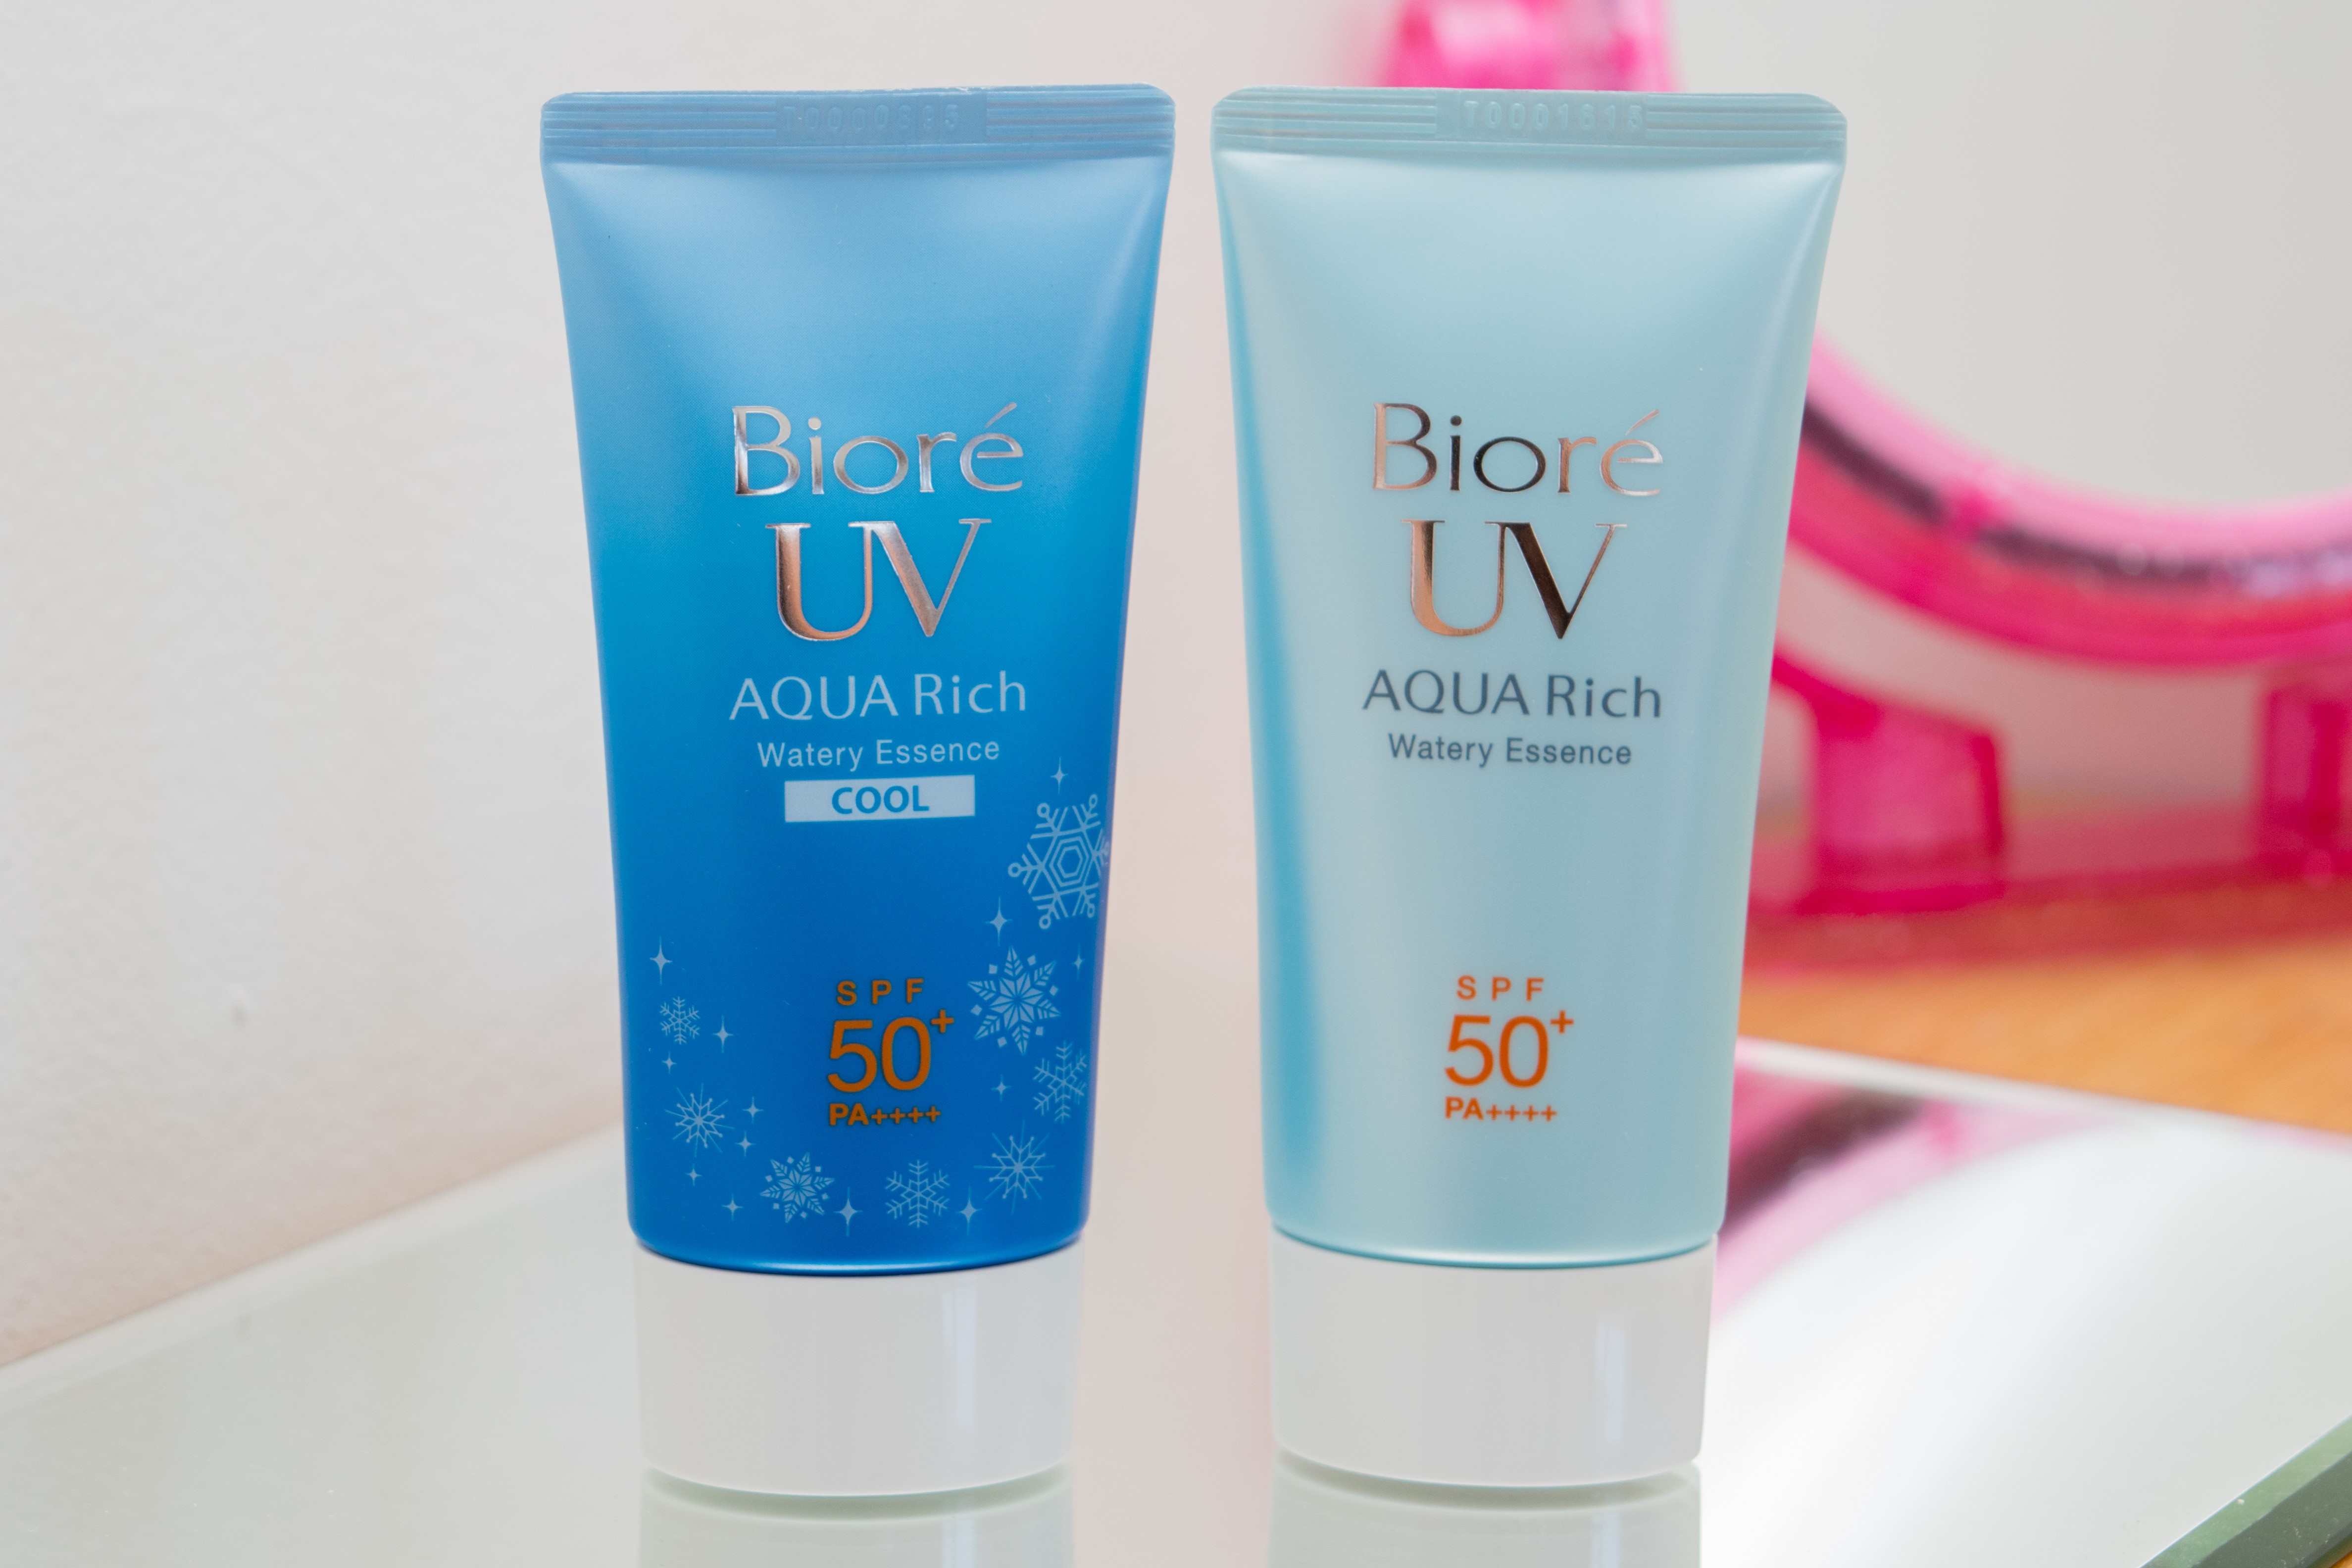 Bioré - UV AQUA Rich Watery Essence SPF 50+ by Cantinho da Tarsi